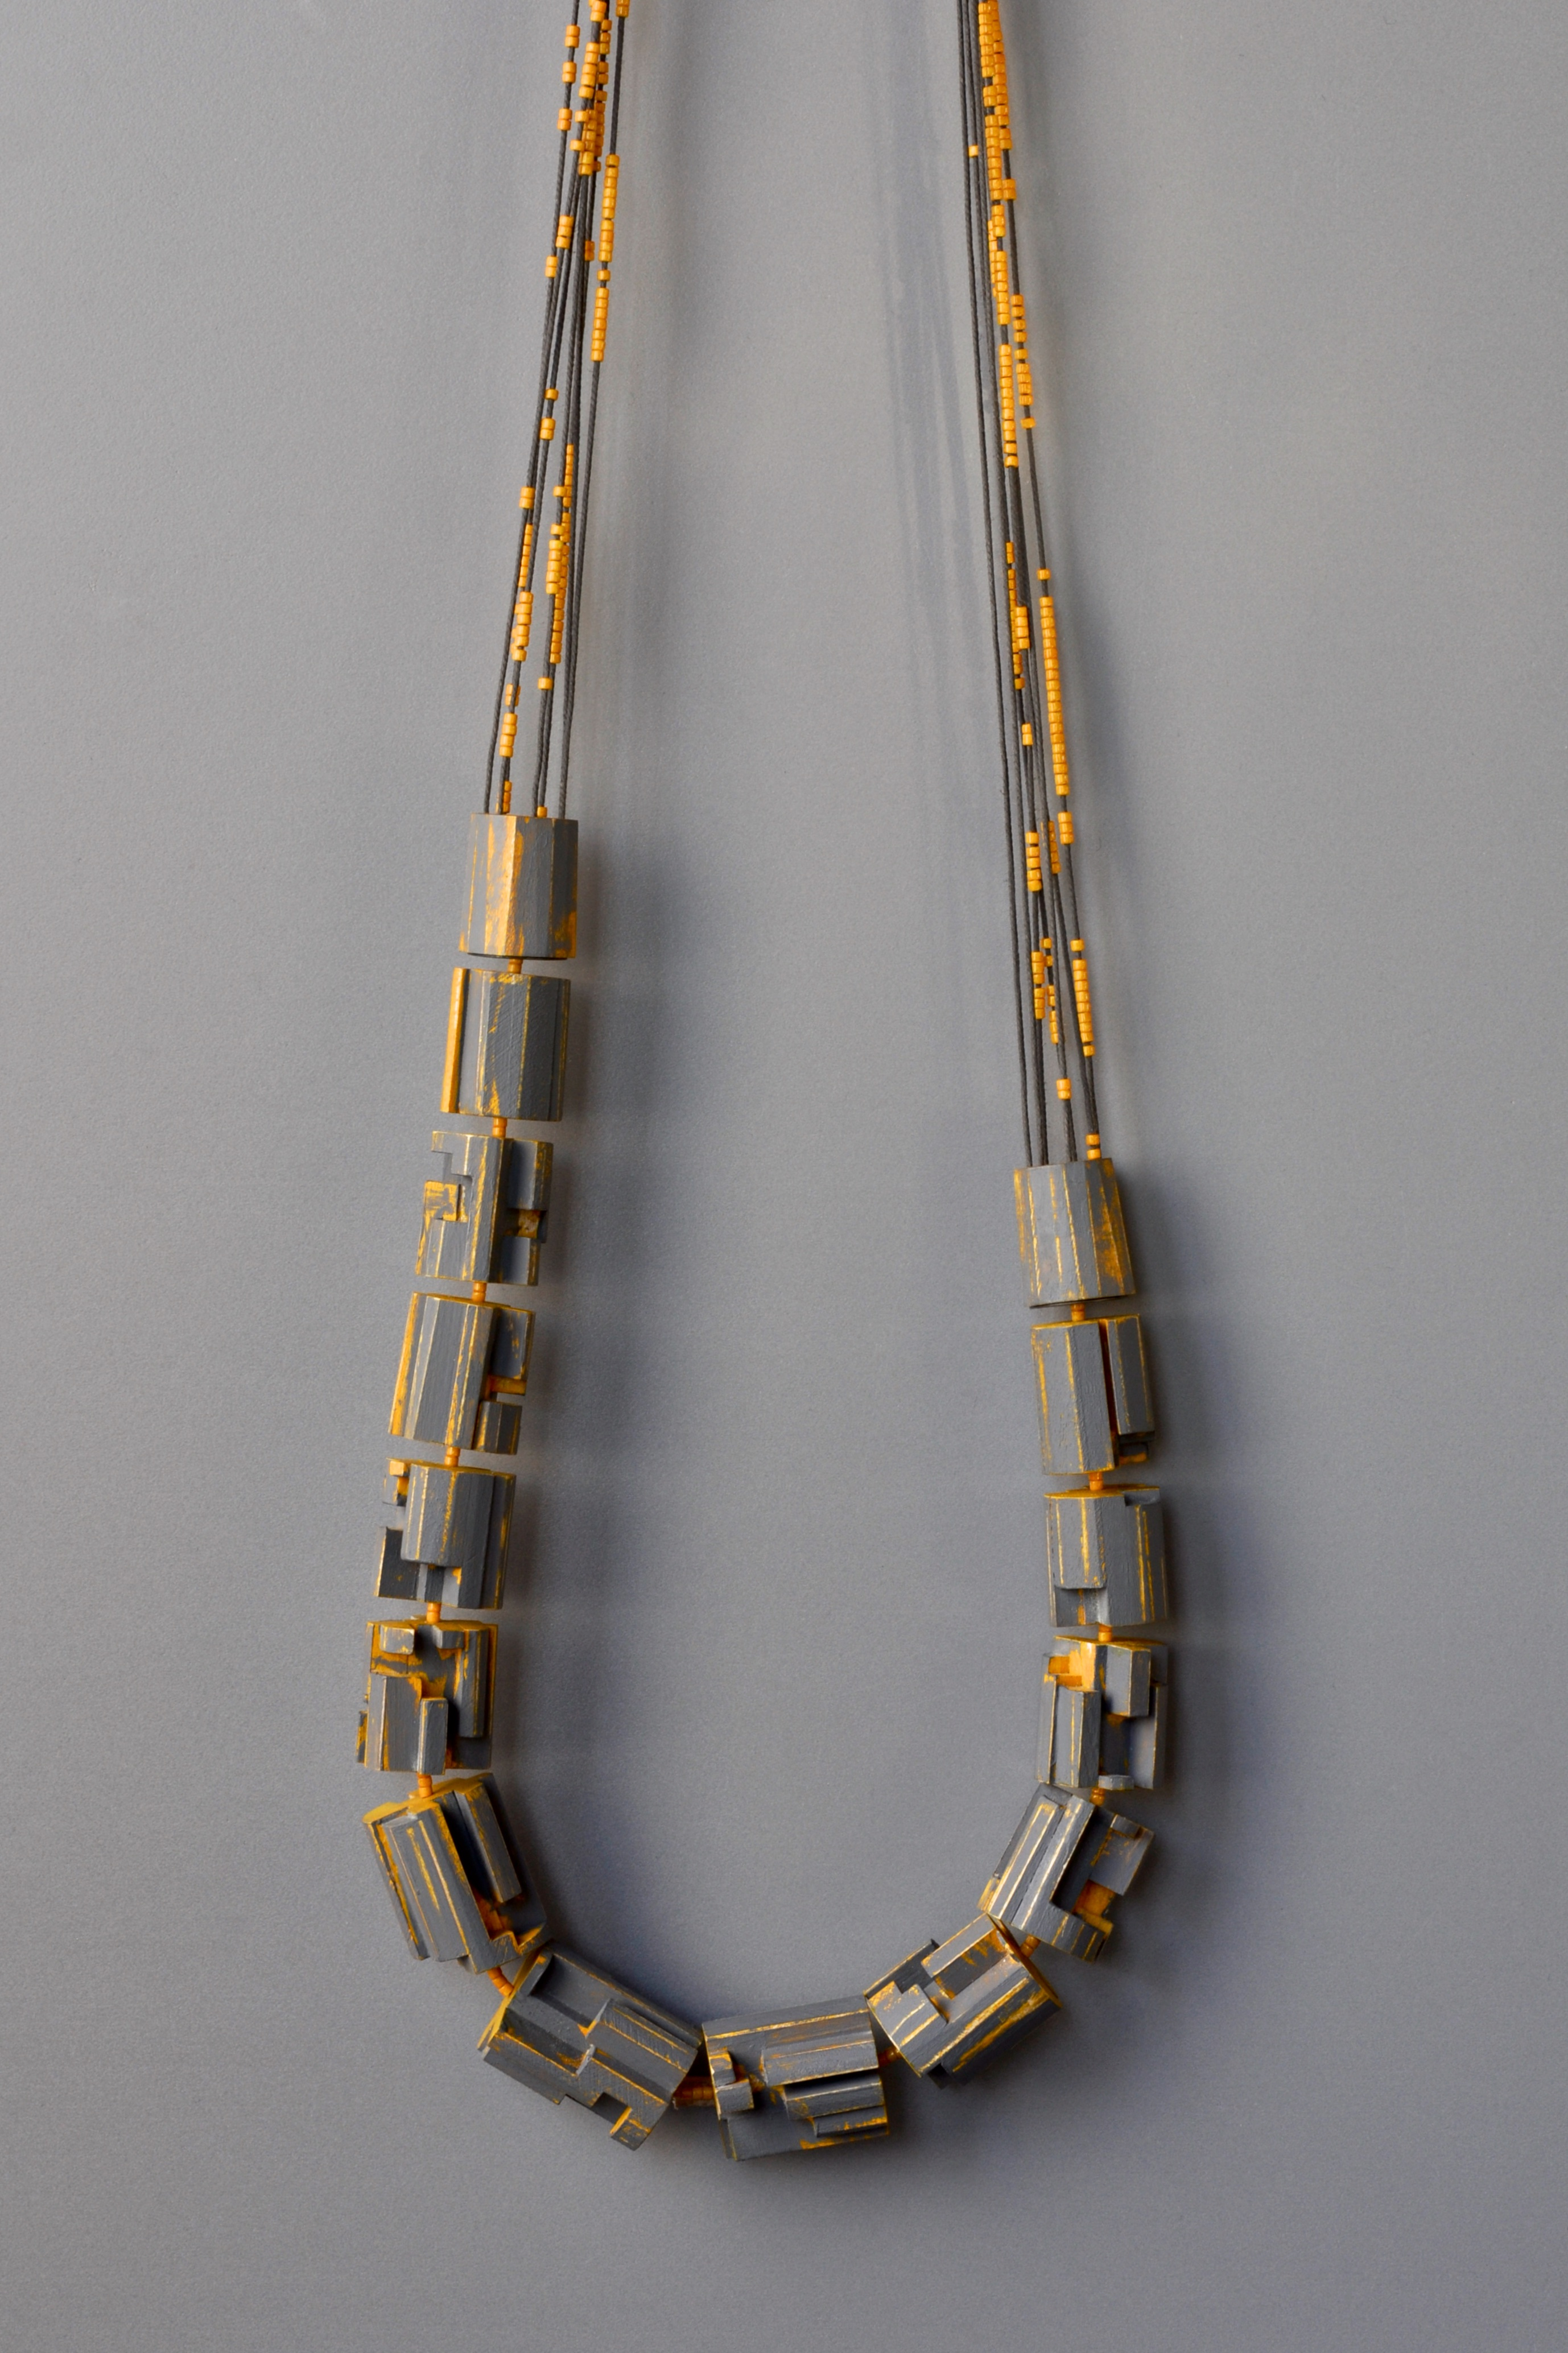 Julia Turner, Scape Necklace (Yellow/Grey), Maple, stain, paint, cord, Japanese glass beads